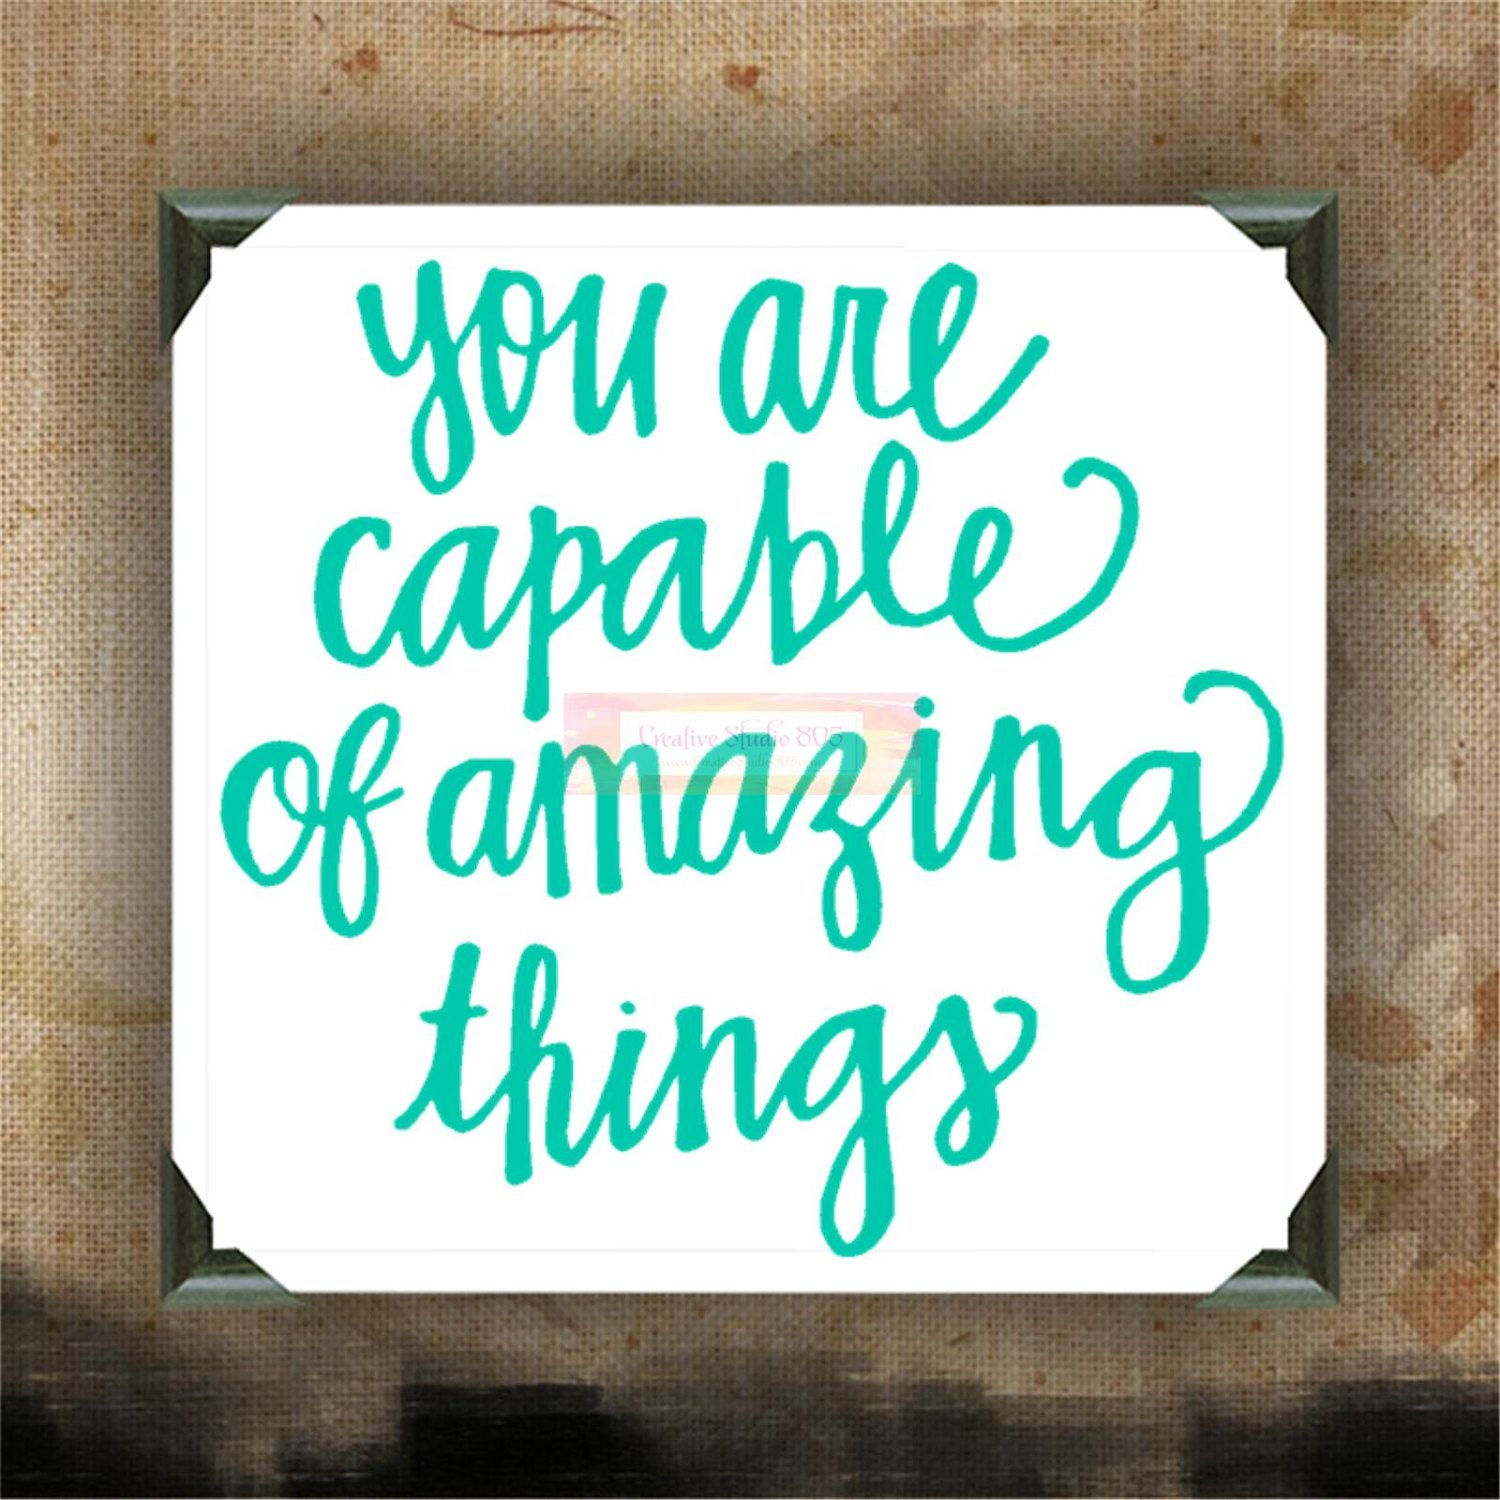 Inspirational Quotes Wall Decor You are capable of amazing things   Painted Canvases   wall decor  Inspirational Quotes Wall Decor